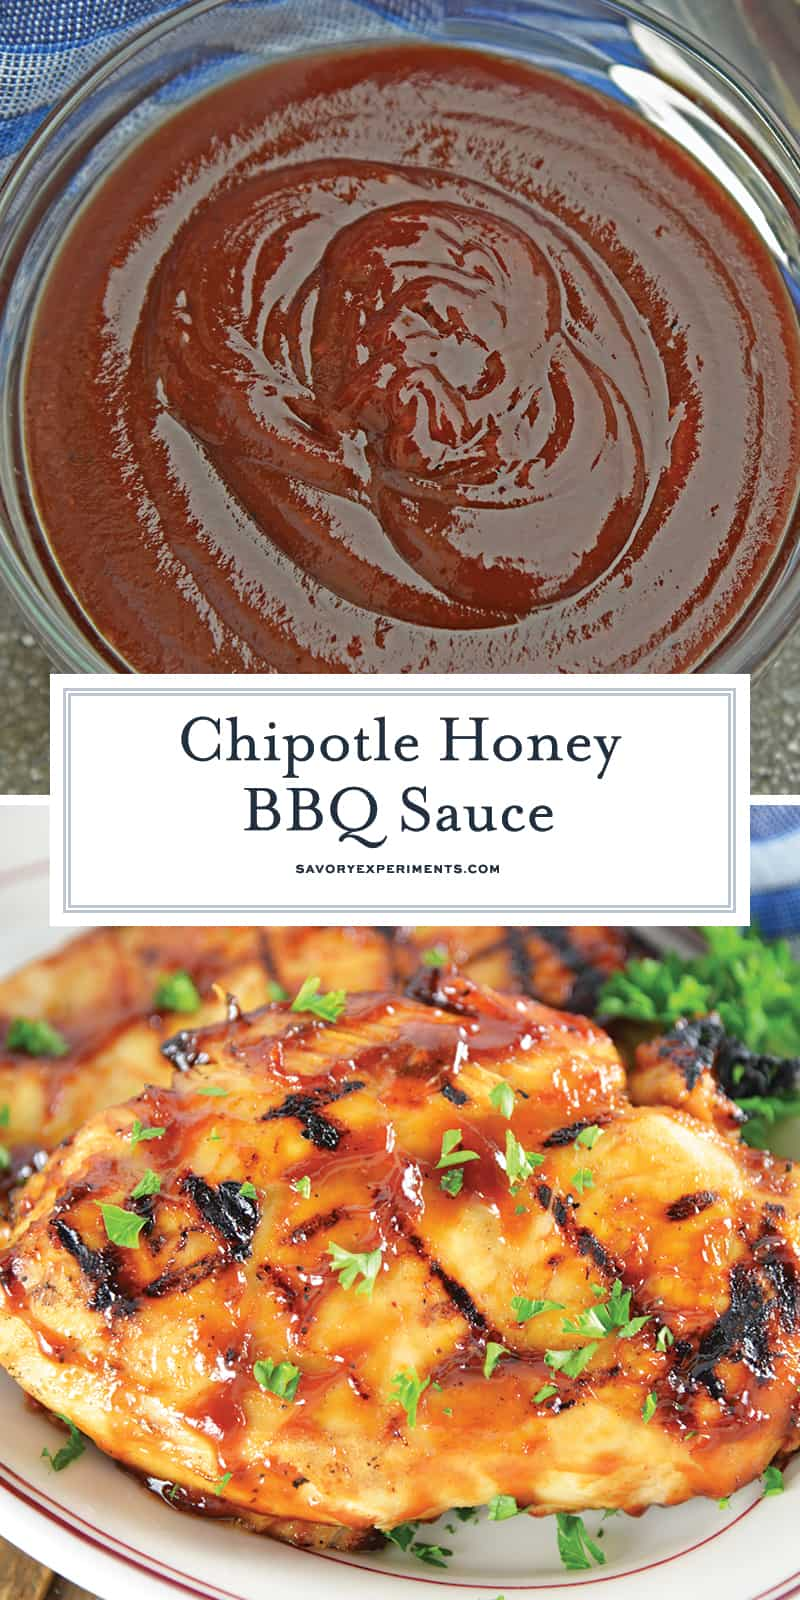 Chipotle Honey BBQ Sauce is a delicious recipe that will leave you with your very own homemade BBQ sauce! Slightly sweet and slightly spicy, it tastes perfect on anything that needs homemade BBQ sauce. #BBQsauce #homemadeBBQsauce www.savoryexperiments.com